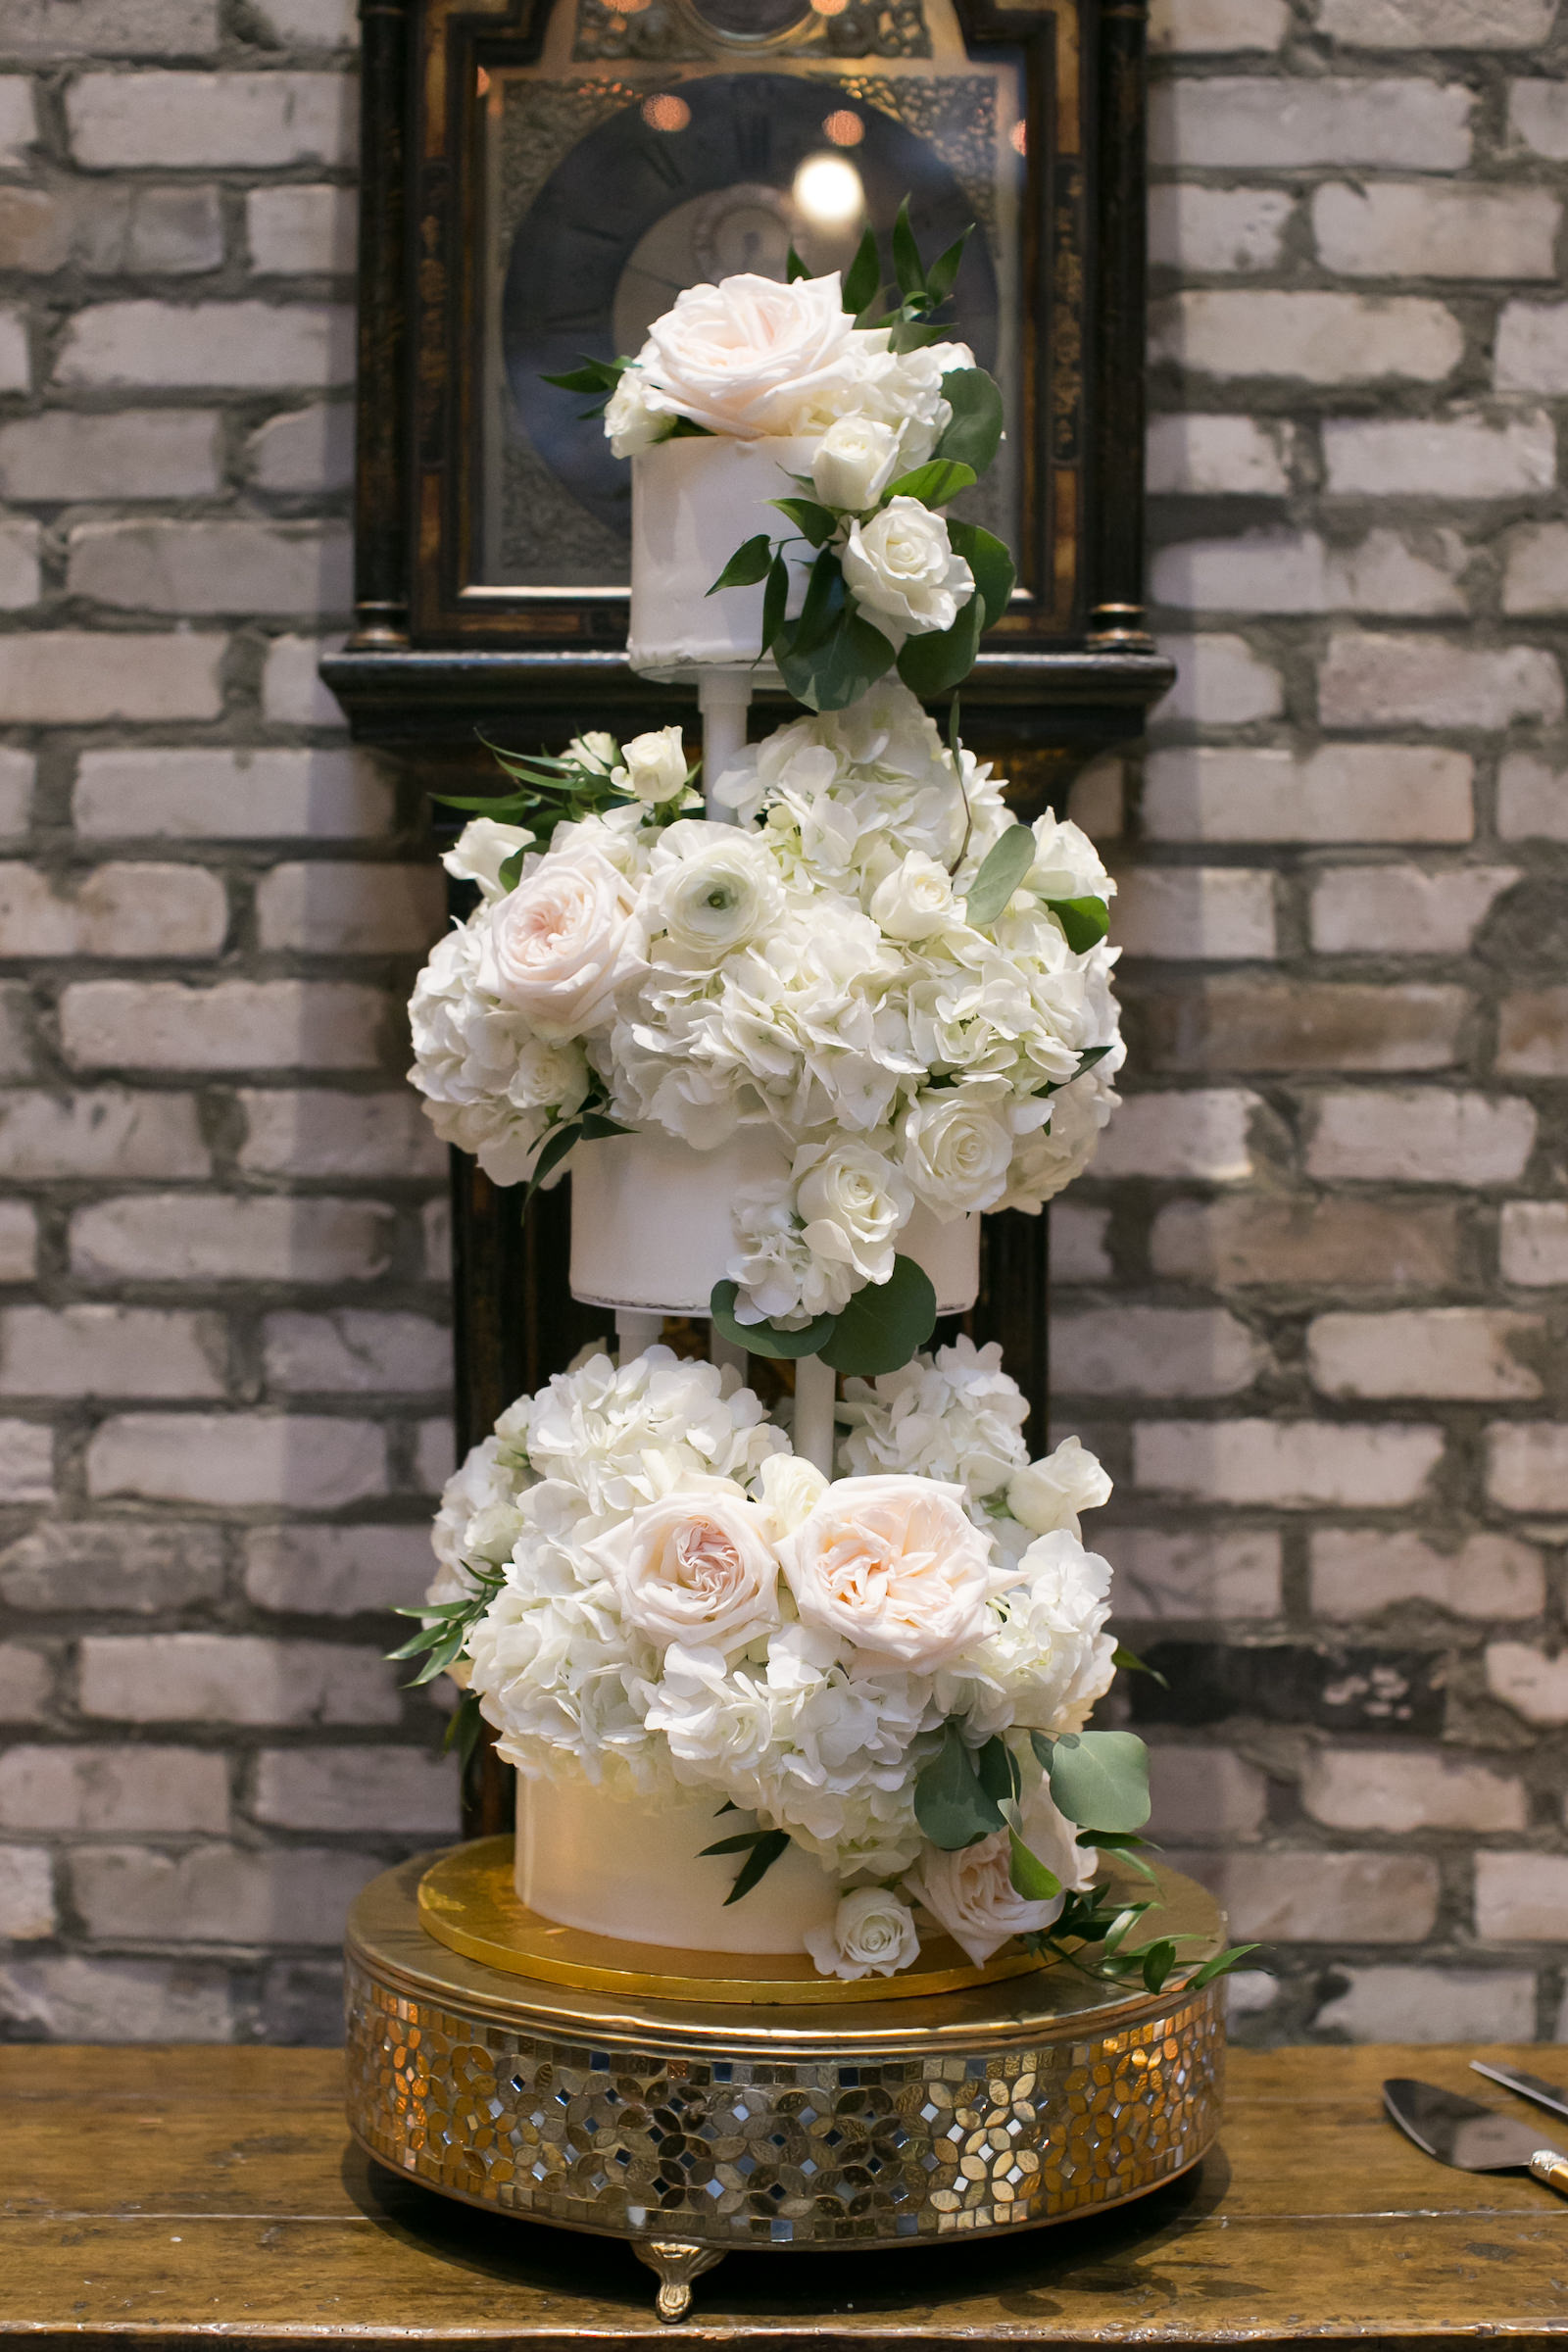 Three Tier Wedding Cake Filled with White Hydrangea and Roses on Gold Round Mosaic Cake Stand